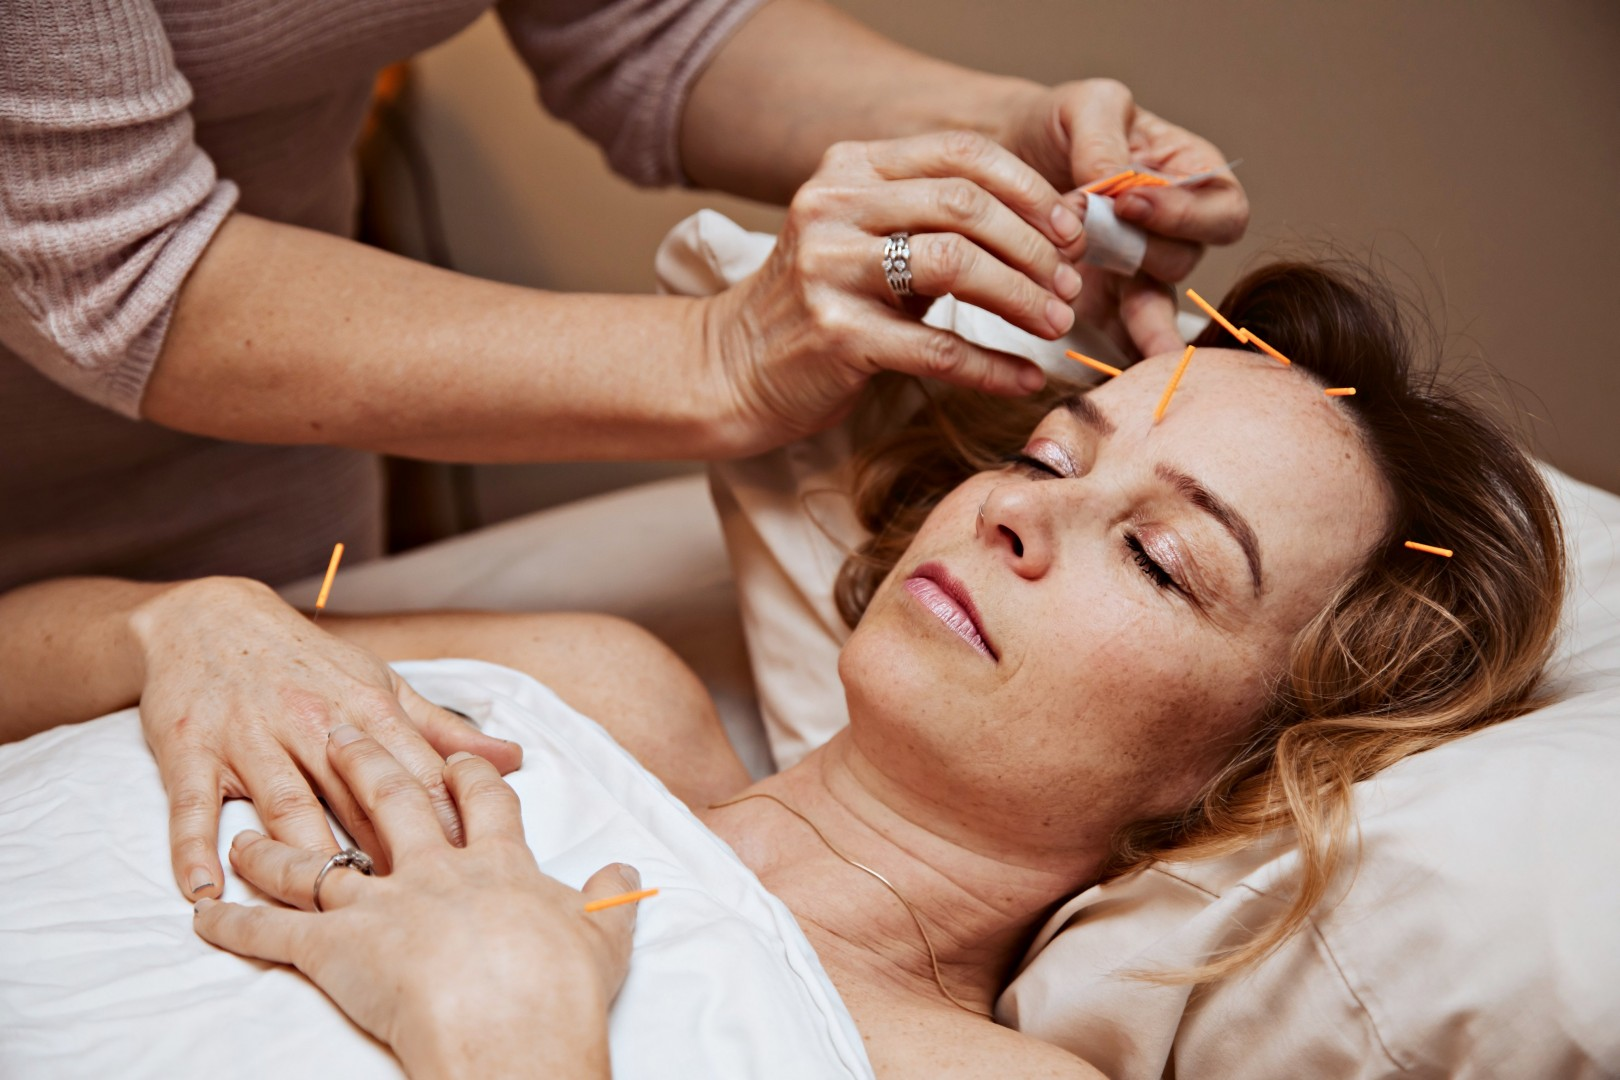 Acupuncture treatment by Carolann Stoll, RAc in Nanaimo, BC